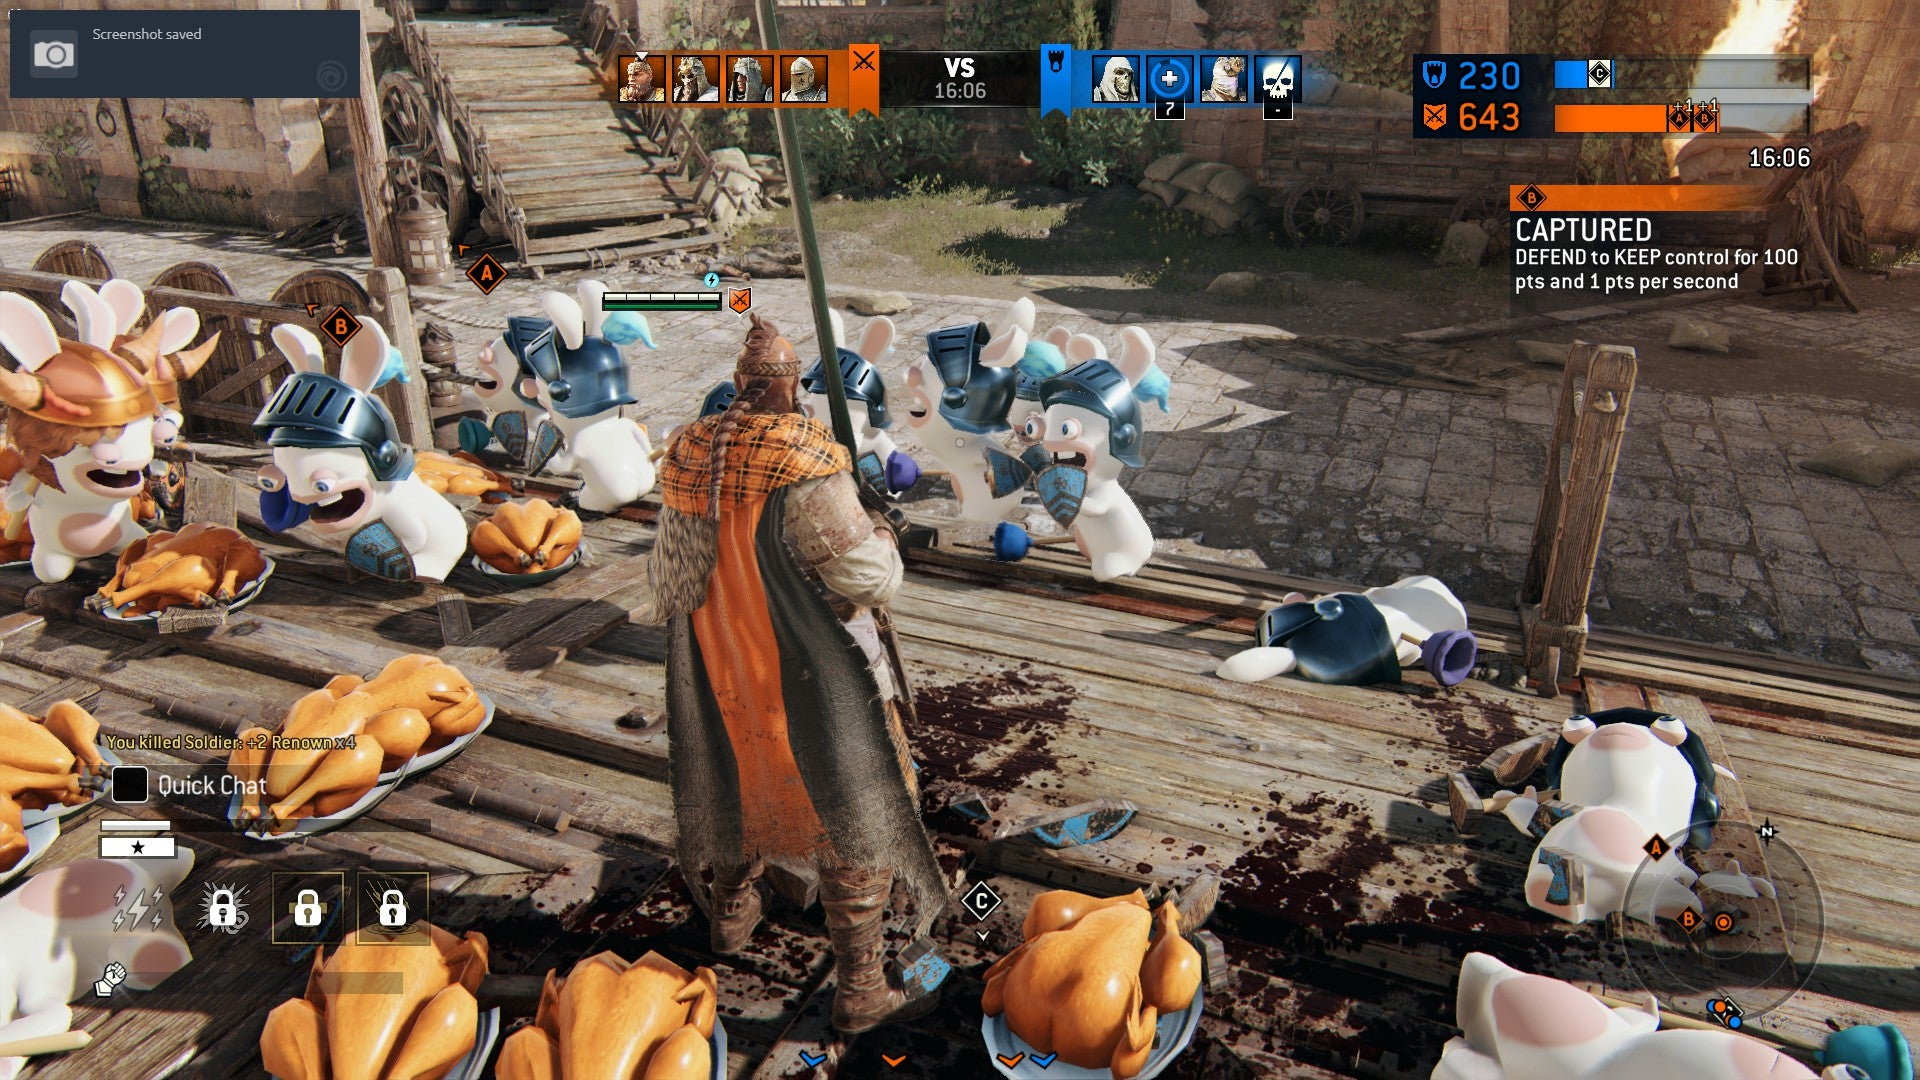 Vikings Vs Rabbids For Honor Just Won April Fool S